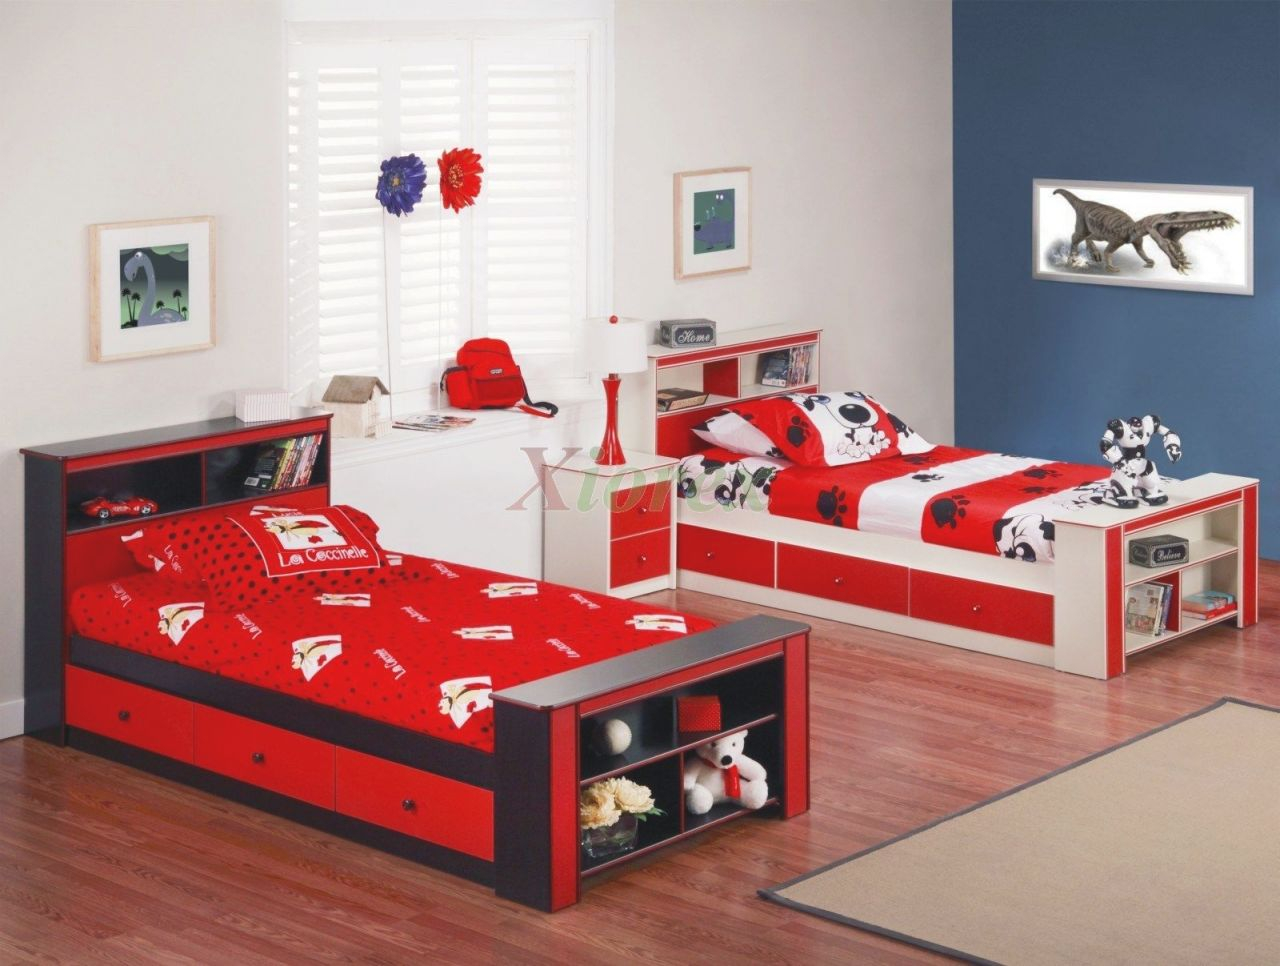 30 Wonderful Image Of Kids Bedroom Furniture Boys Kids With Regard To Luxury Twin Bedroom Furniture Set Awesome Decors